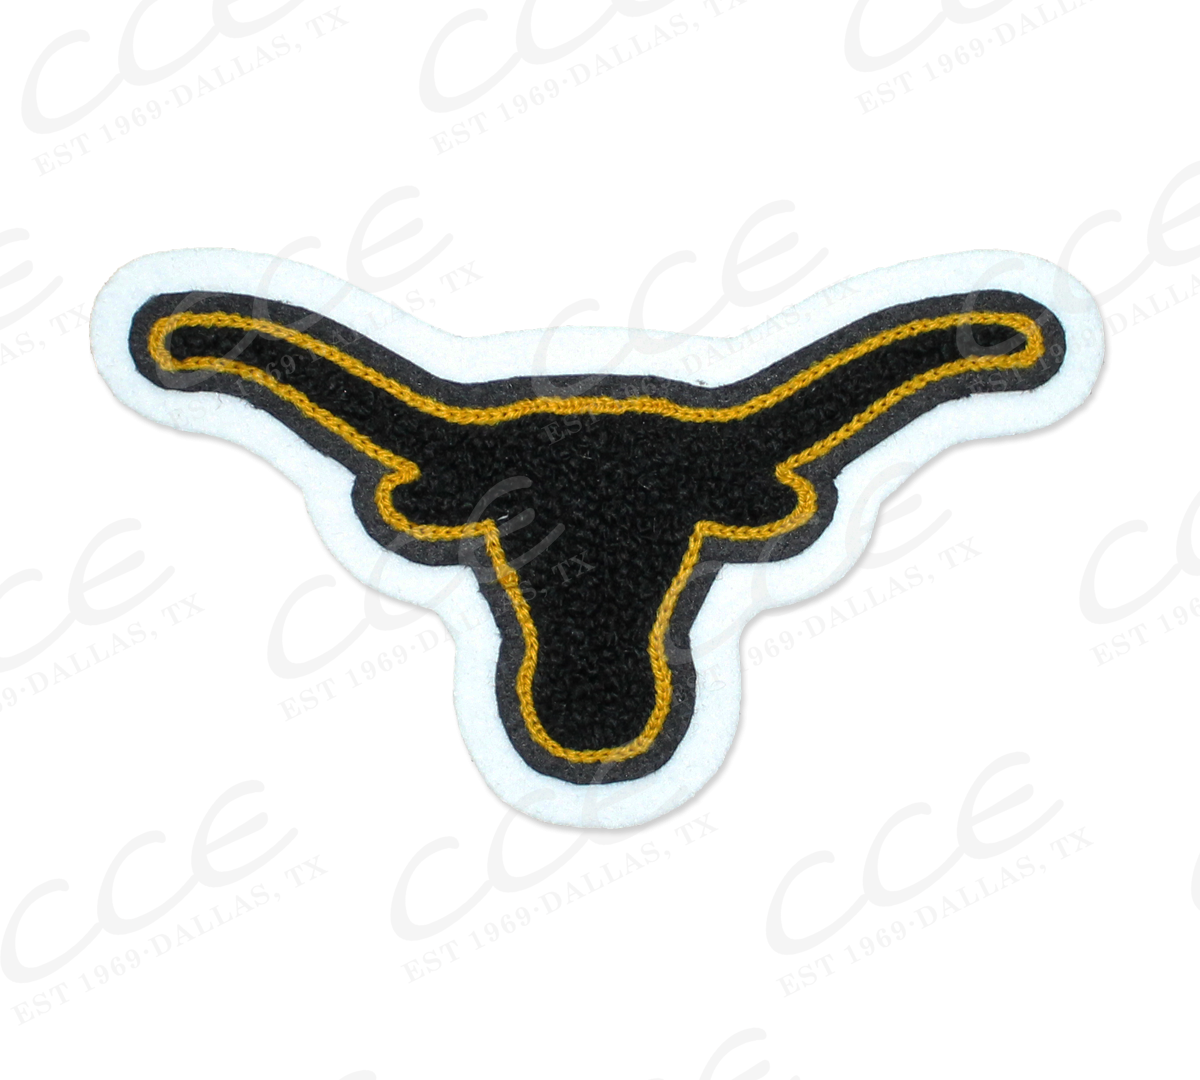 jpg freeuse download Big spring hs mascot. Longhorn clipart symbol.